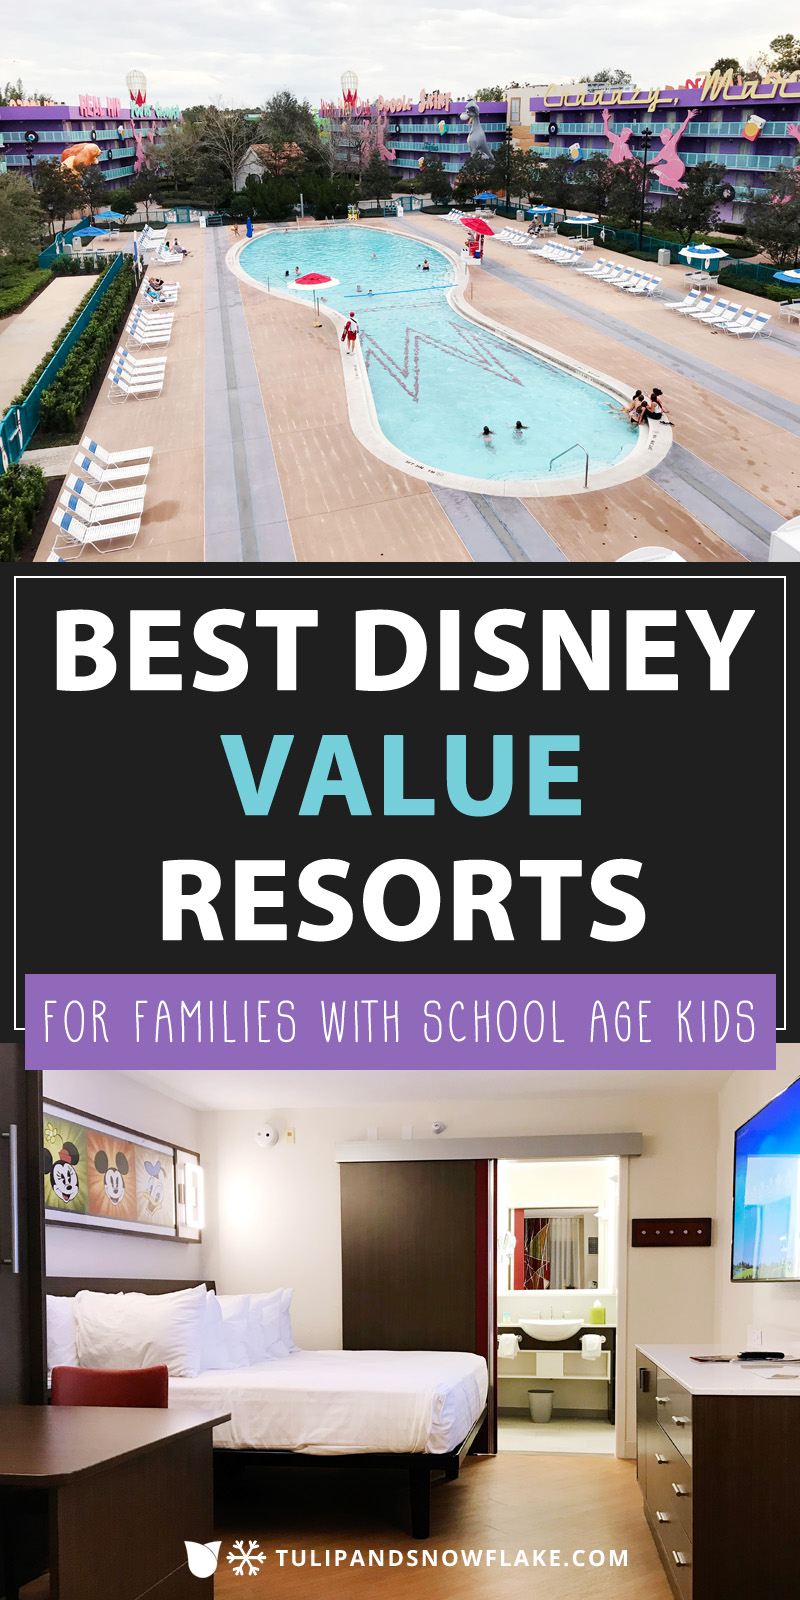 Best Disney Value Resorts for families with school age kids